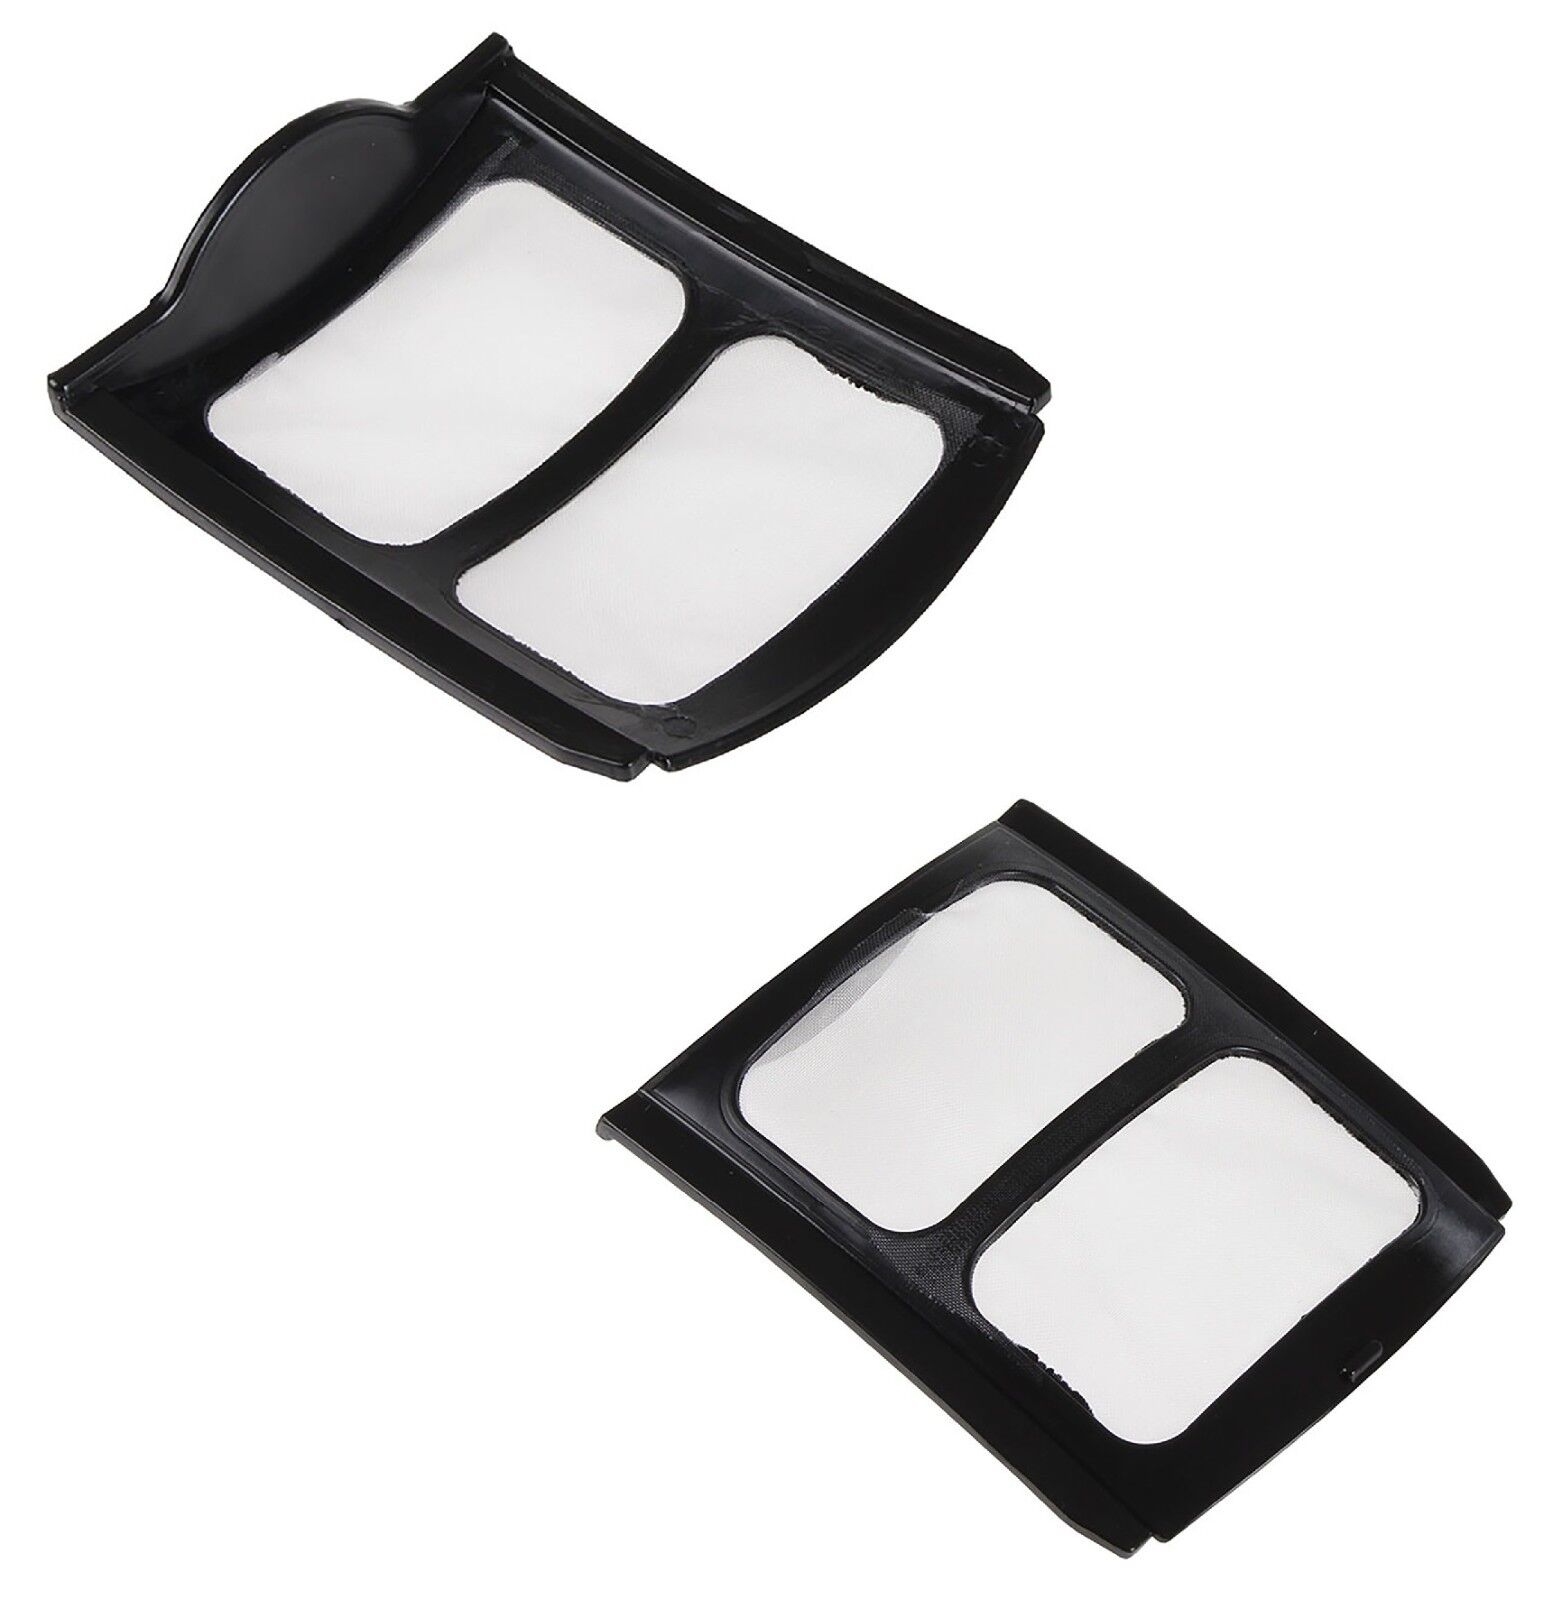 Pack of 2 Russell Hobbs 12911 Kettle Spout Filter